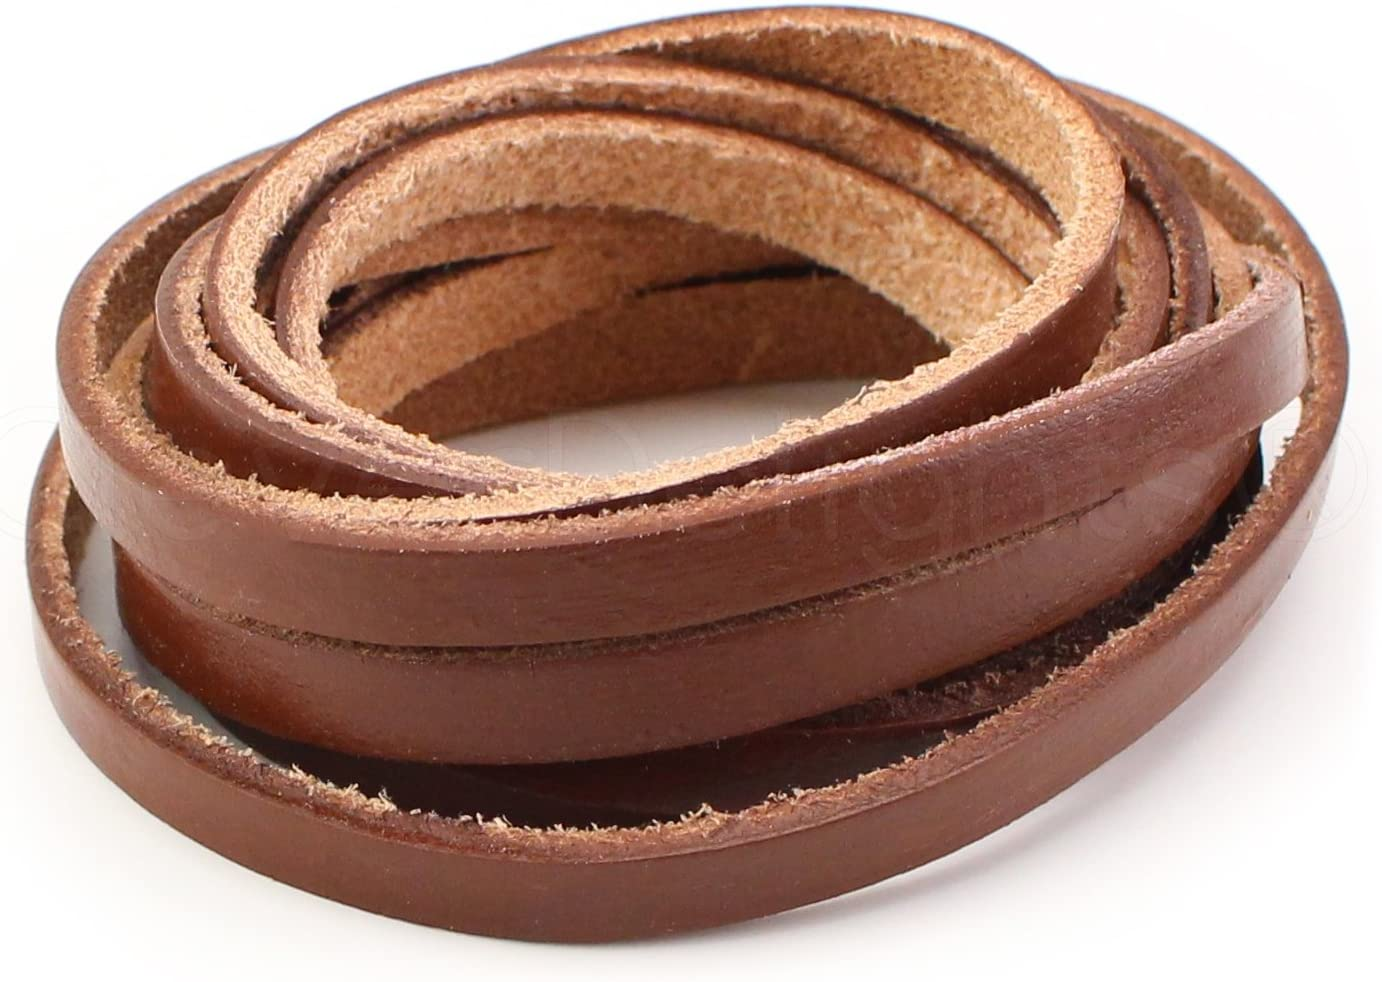 5oz Genuine Leather CleverDelights Premium Cowhide Leather Strap Jewelry Craft Supply 15 Feet Long Dark Brown 1 Wide